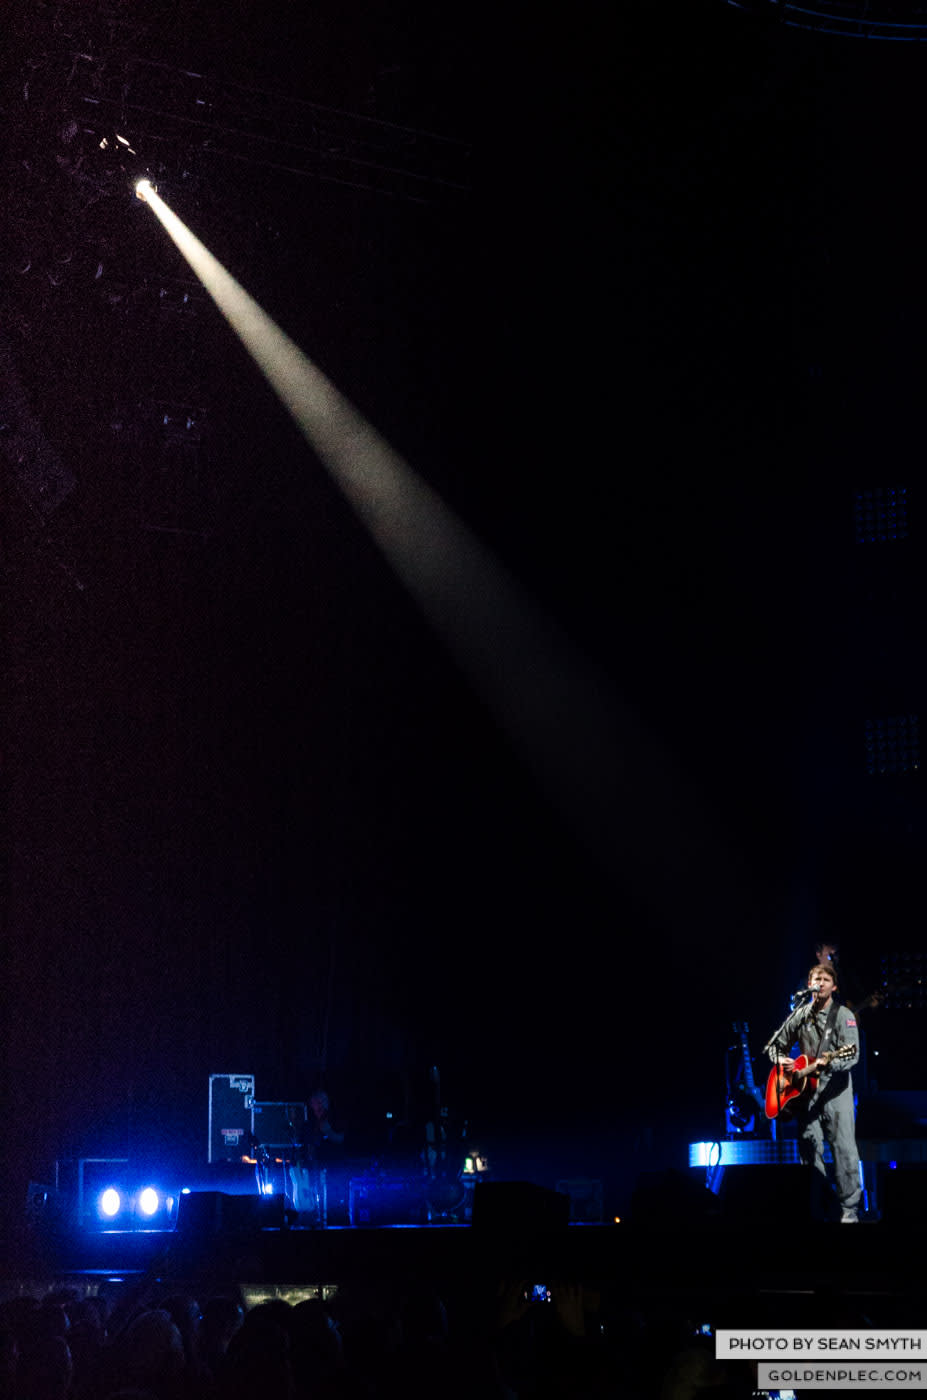 james-blunt-at-3arena-by-sean-smyth-20-11-14-20-of-29